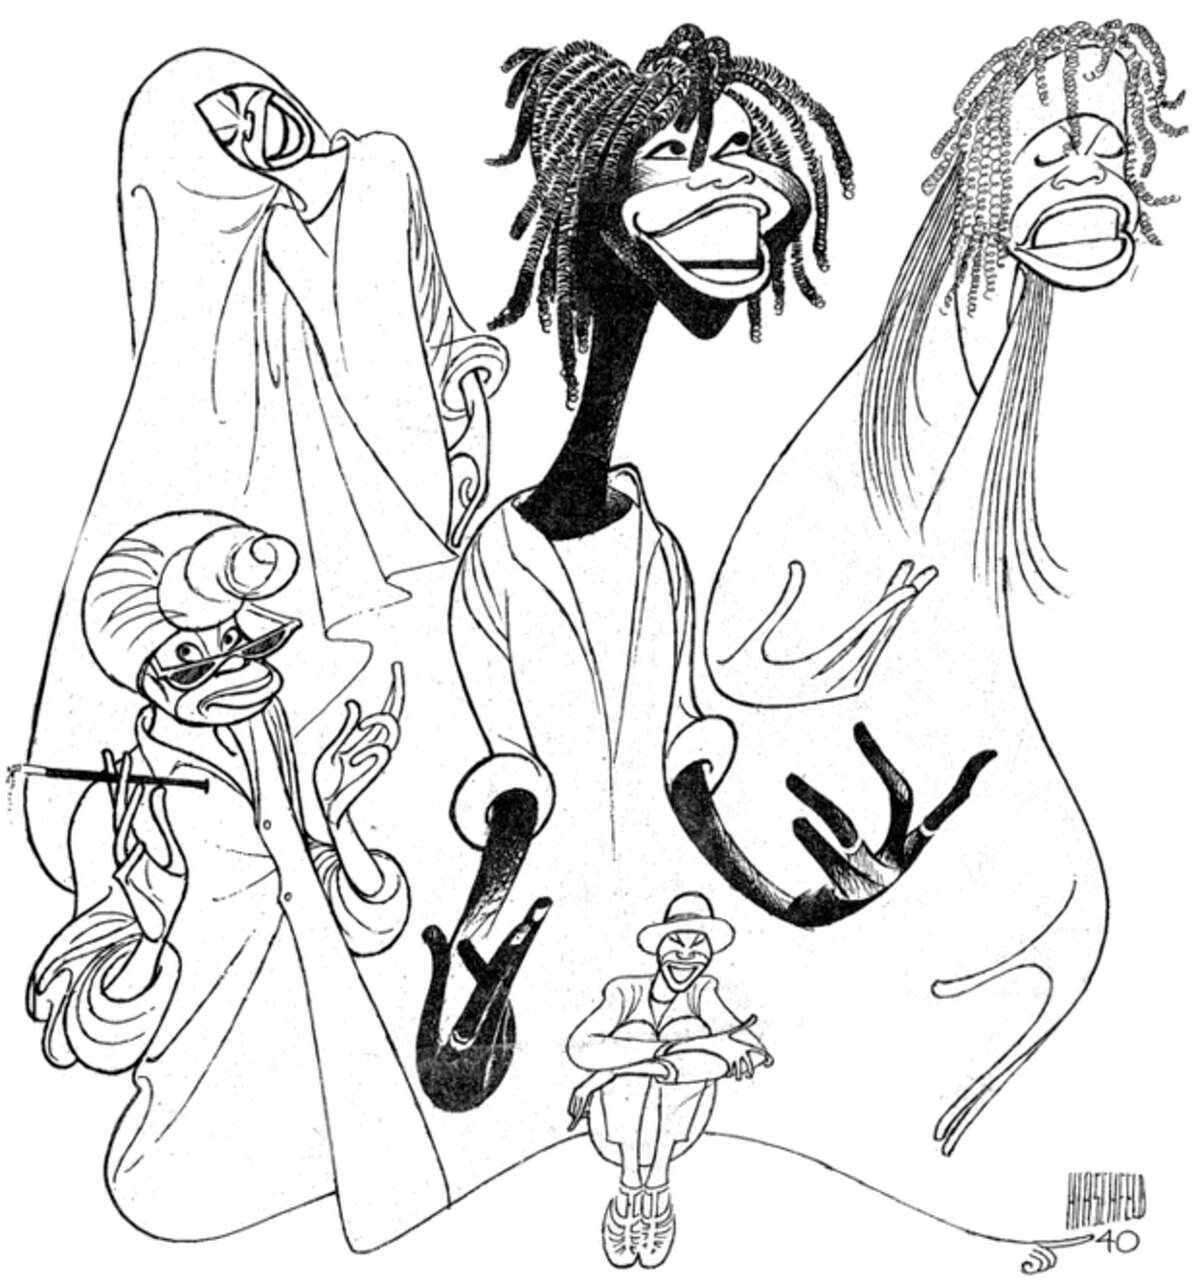 """AP Photo/New York Public Library, Al Hirschfeld This undated image provided by the New York Public Library shows a drawing of Whoopi Goldberg by caricaturist Al Hirschfeld, for a poster of her 1984 one-woman Broadway show. It is part of a new exhibition on Hirschfeld, """"The Line King's Library"""" which opens at The New York Public Library for the Performing Arts at Lincoln Center on Thursday."""